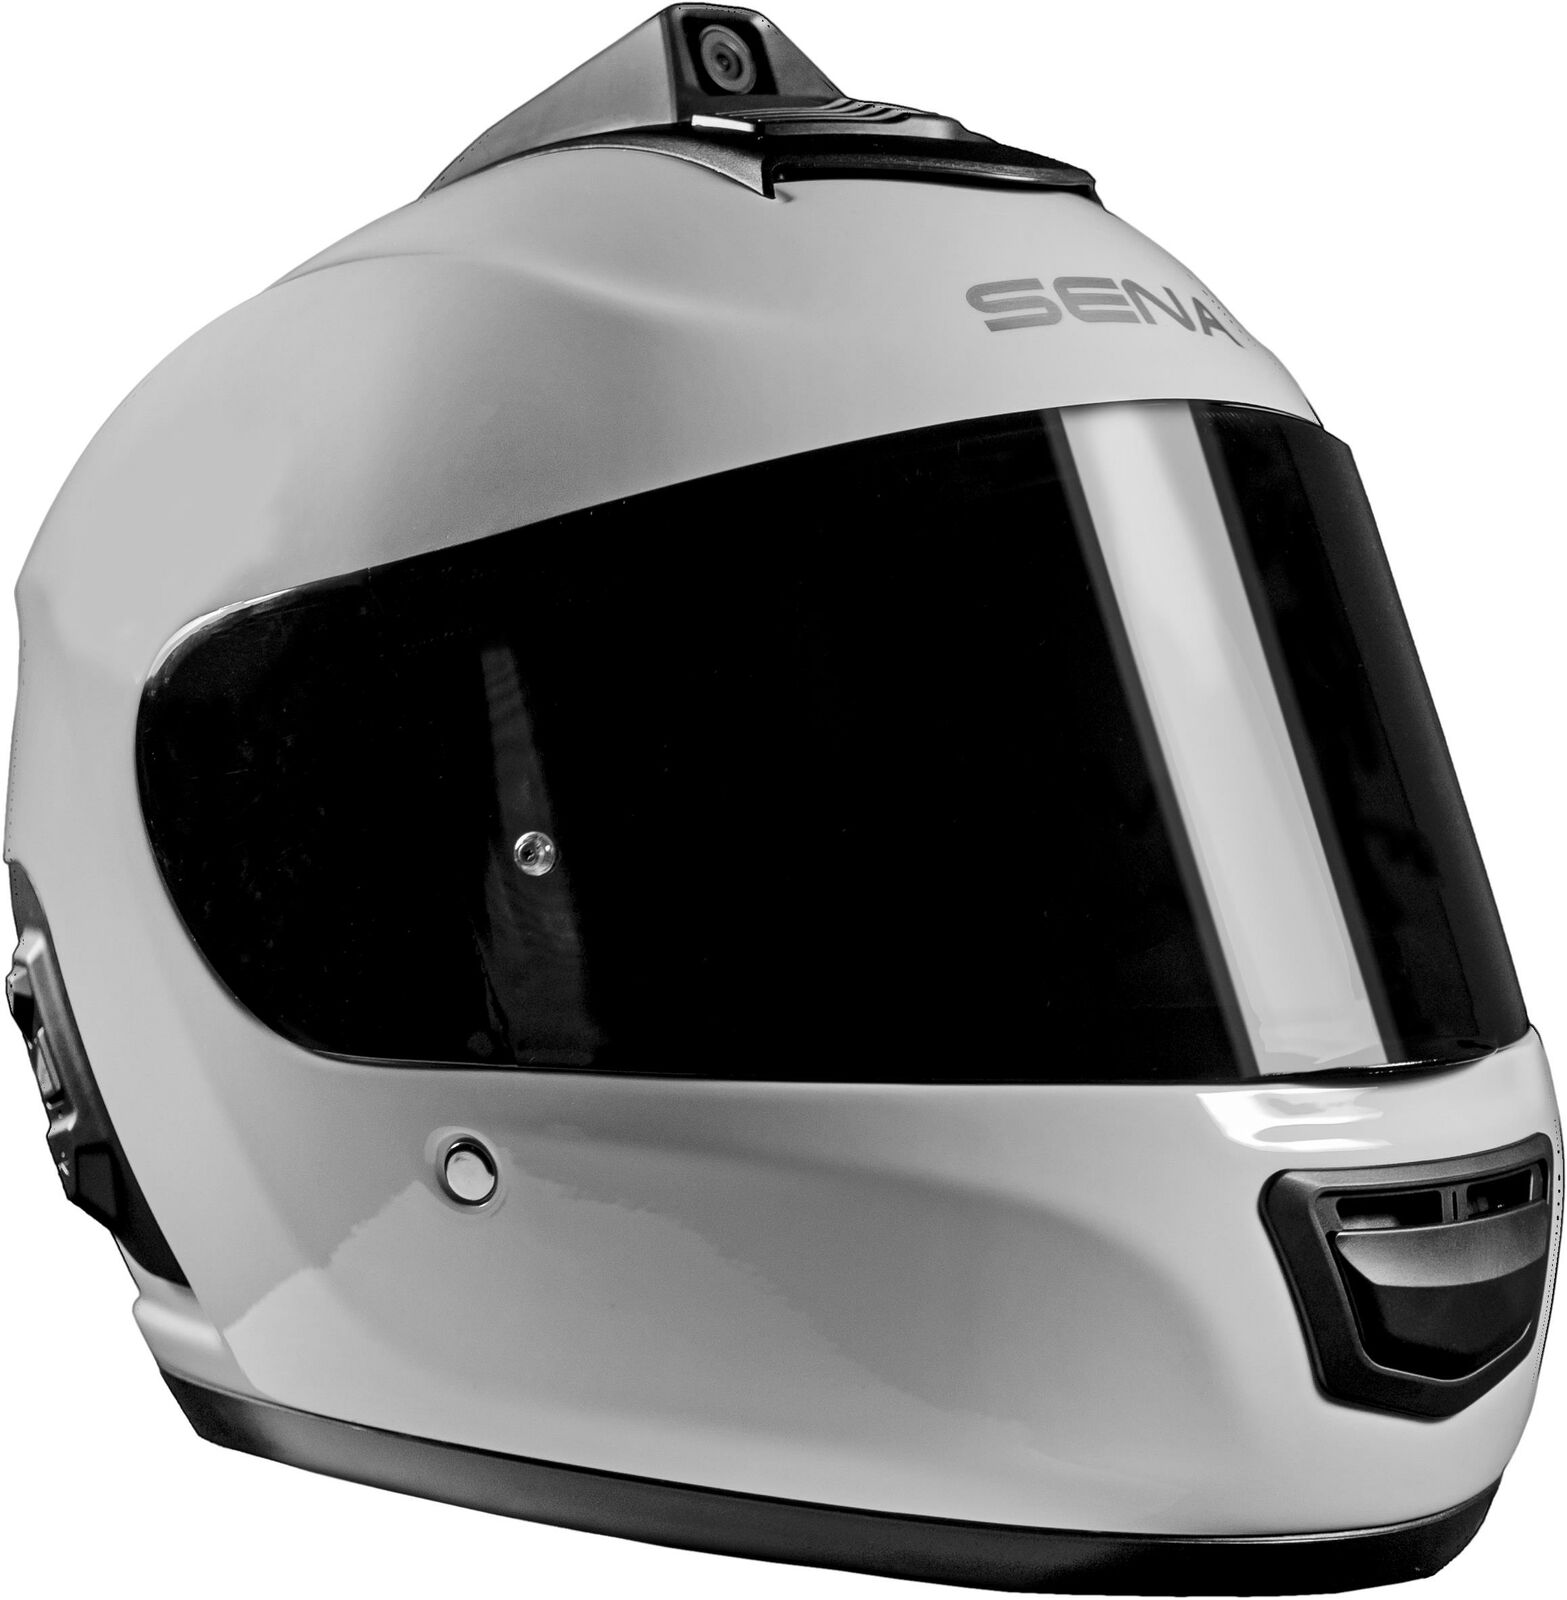 SENA MOMENTUM PRO DUAL BLUETOOTH CAMERA HELMET GLOSSY WHITE MD MO-PRO-GW-M-01 bluetooth camera dual Featured glossy helmet momentum pro sena white